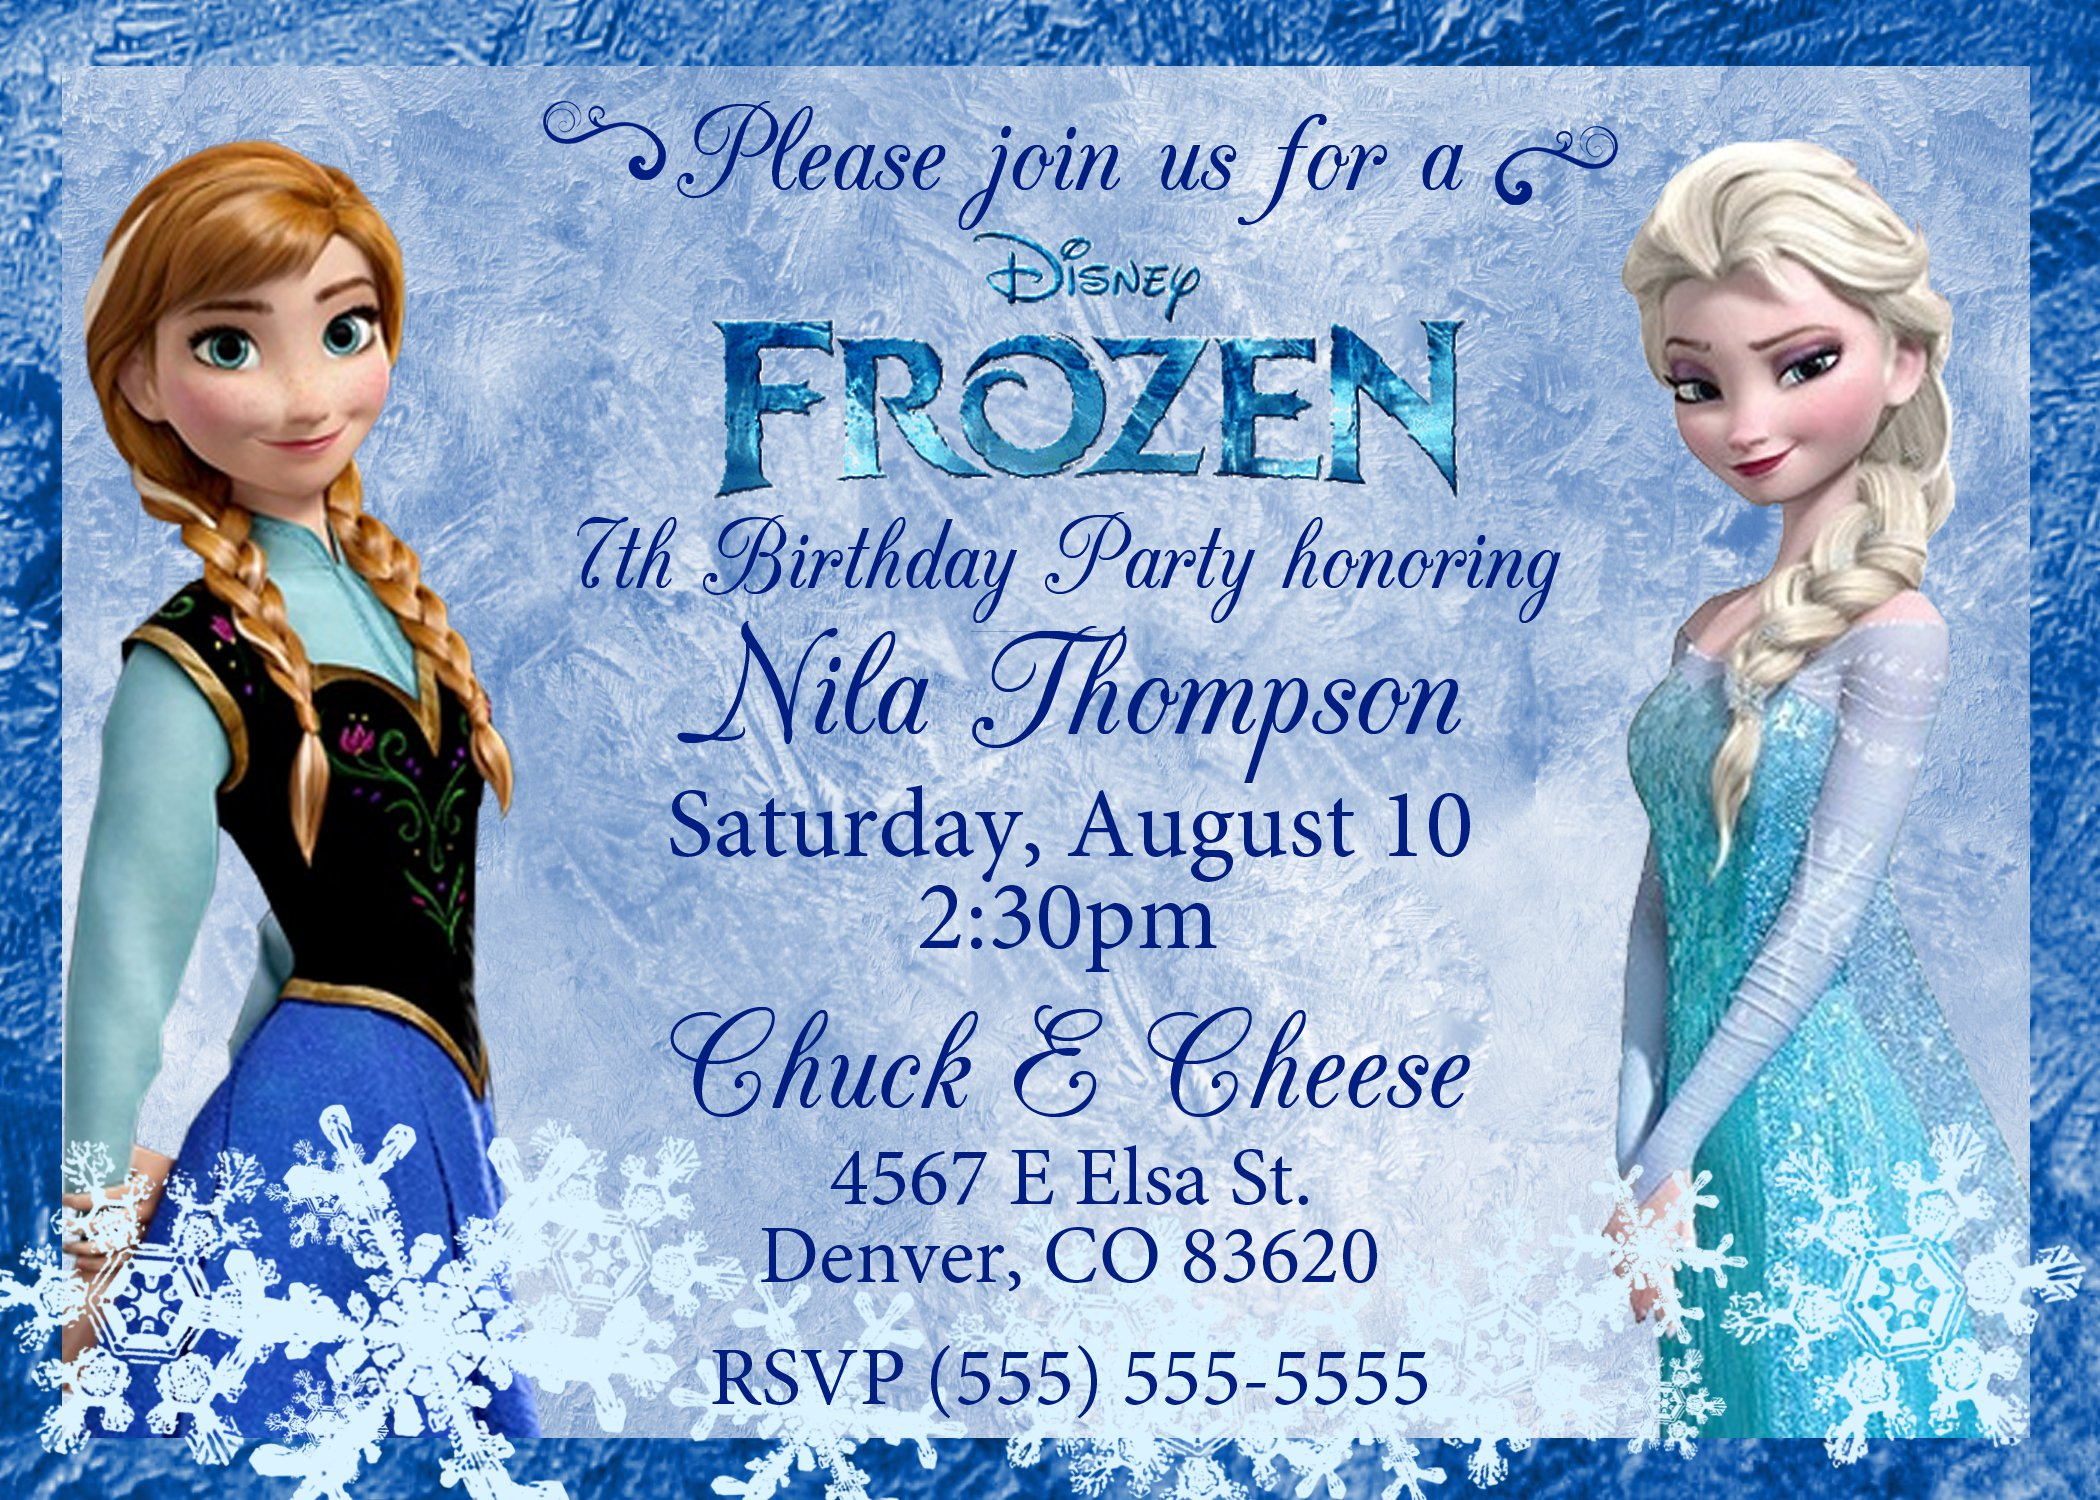 Printable Party Invitations Frozen